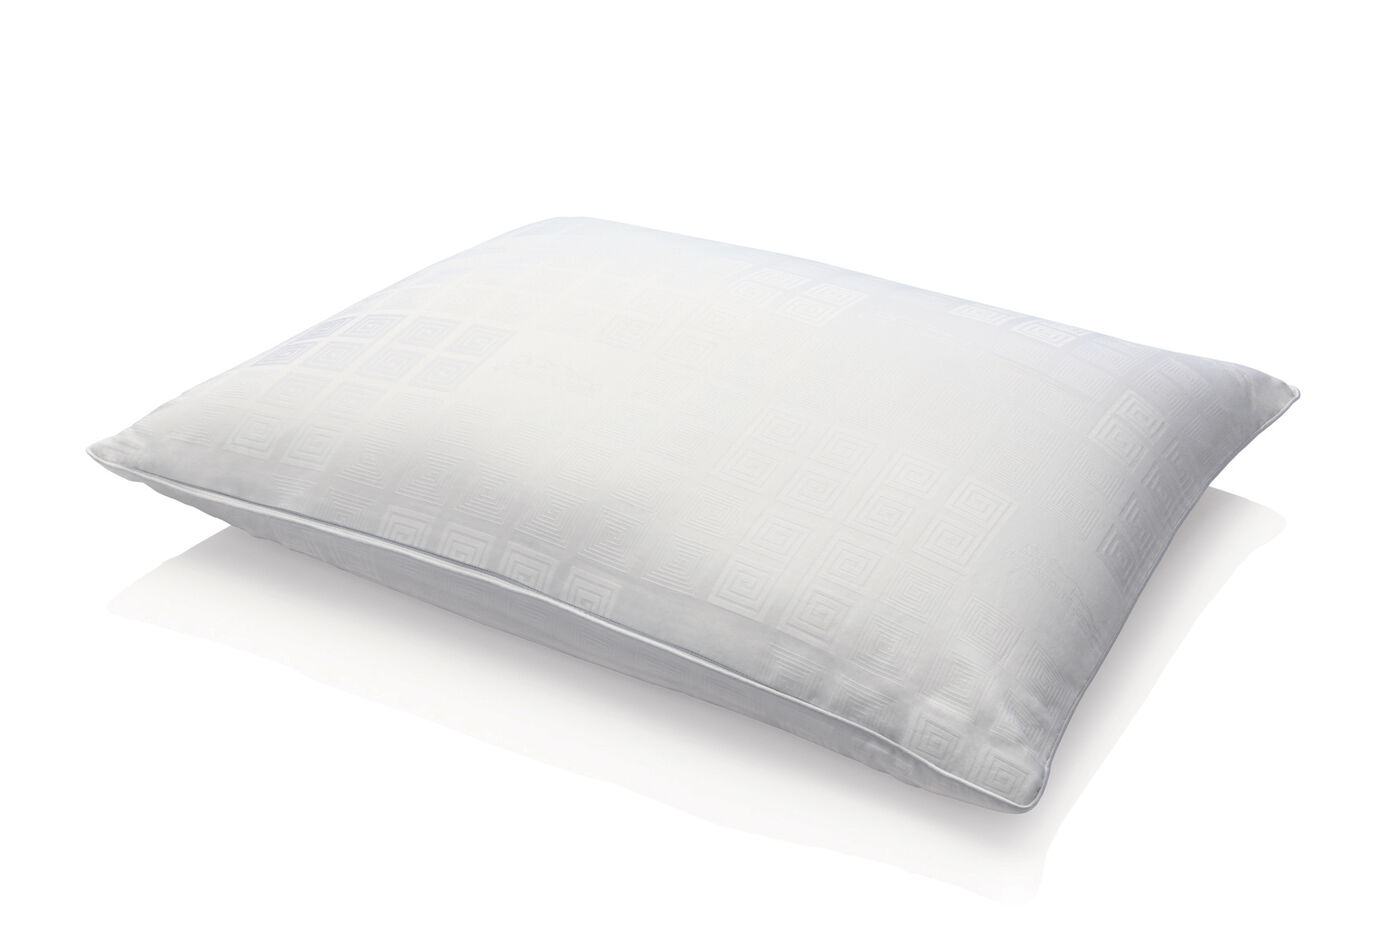 Tempur-Pedic Tempur-Traditional Pillow : Tempur-Pedic TEMPUR-Traditional Pillow Mathis Brothers Furniture